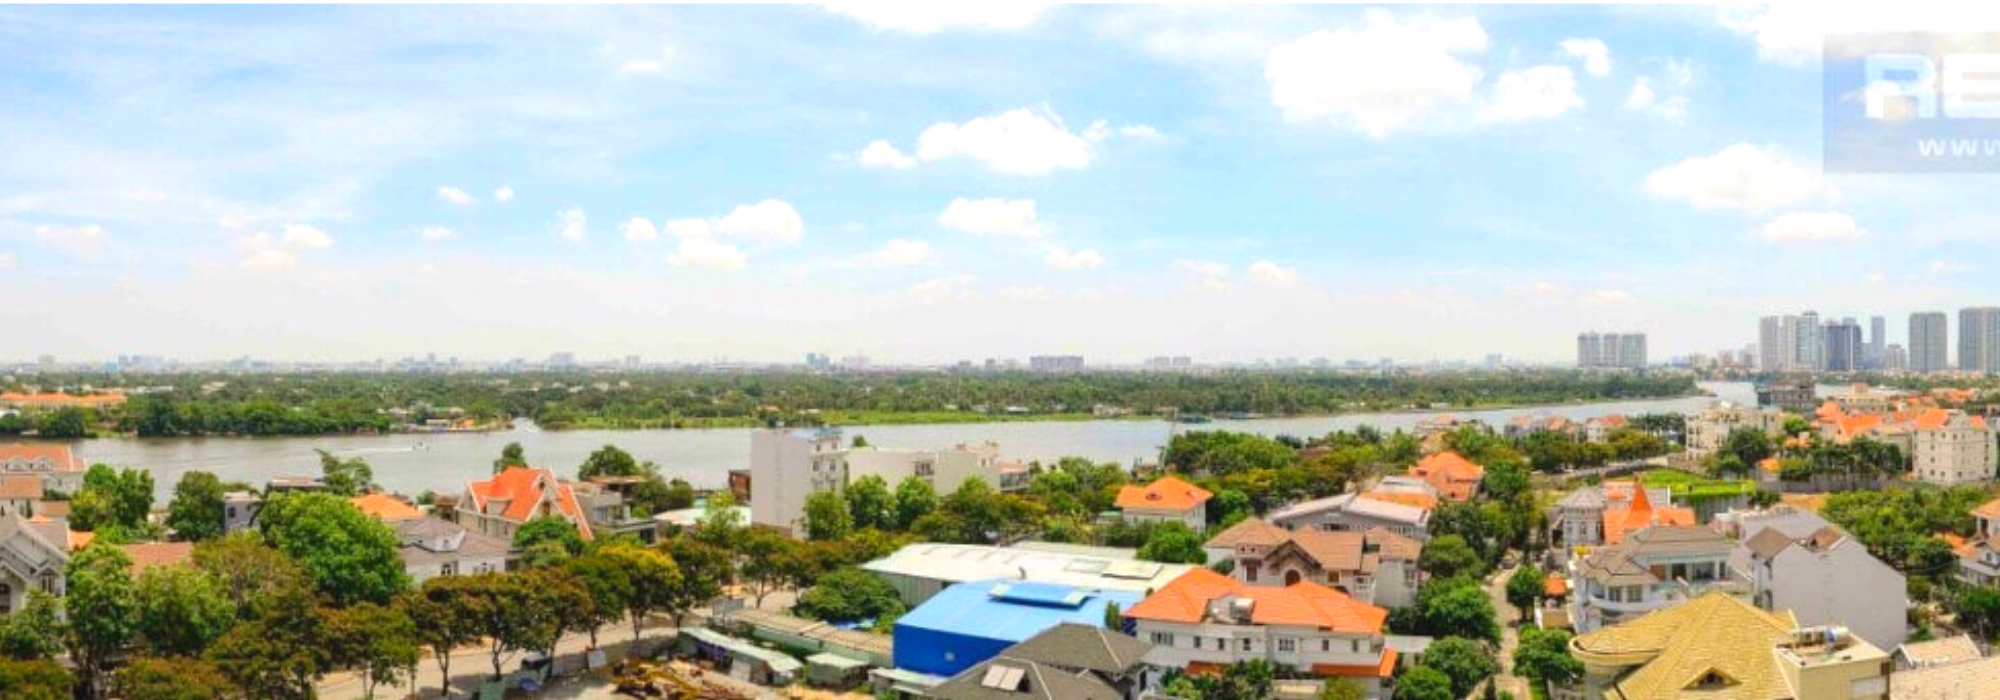 3 Bedroom Apartment, Xi Riverview Palace, District 2, HCMC